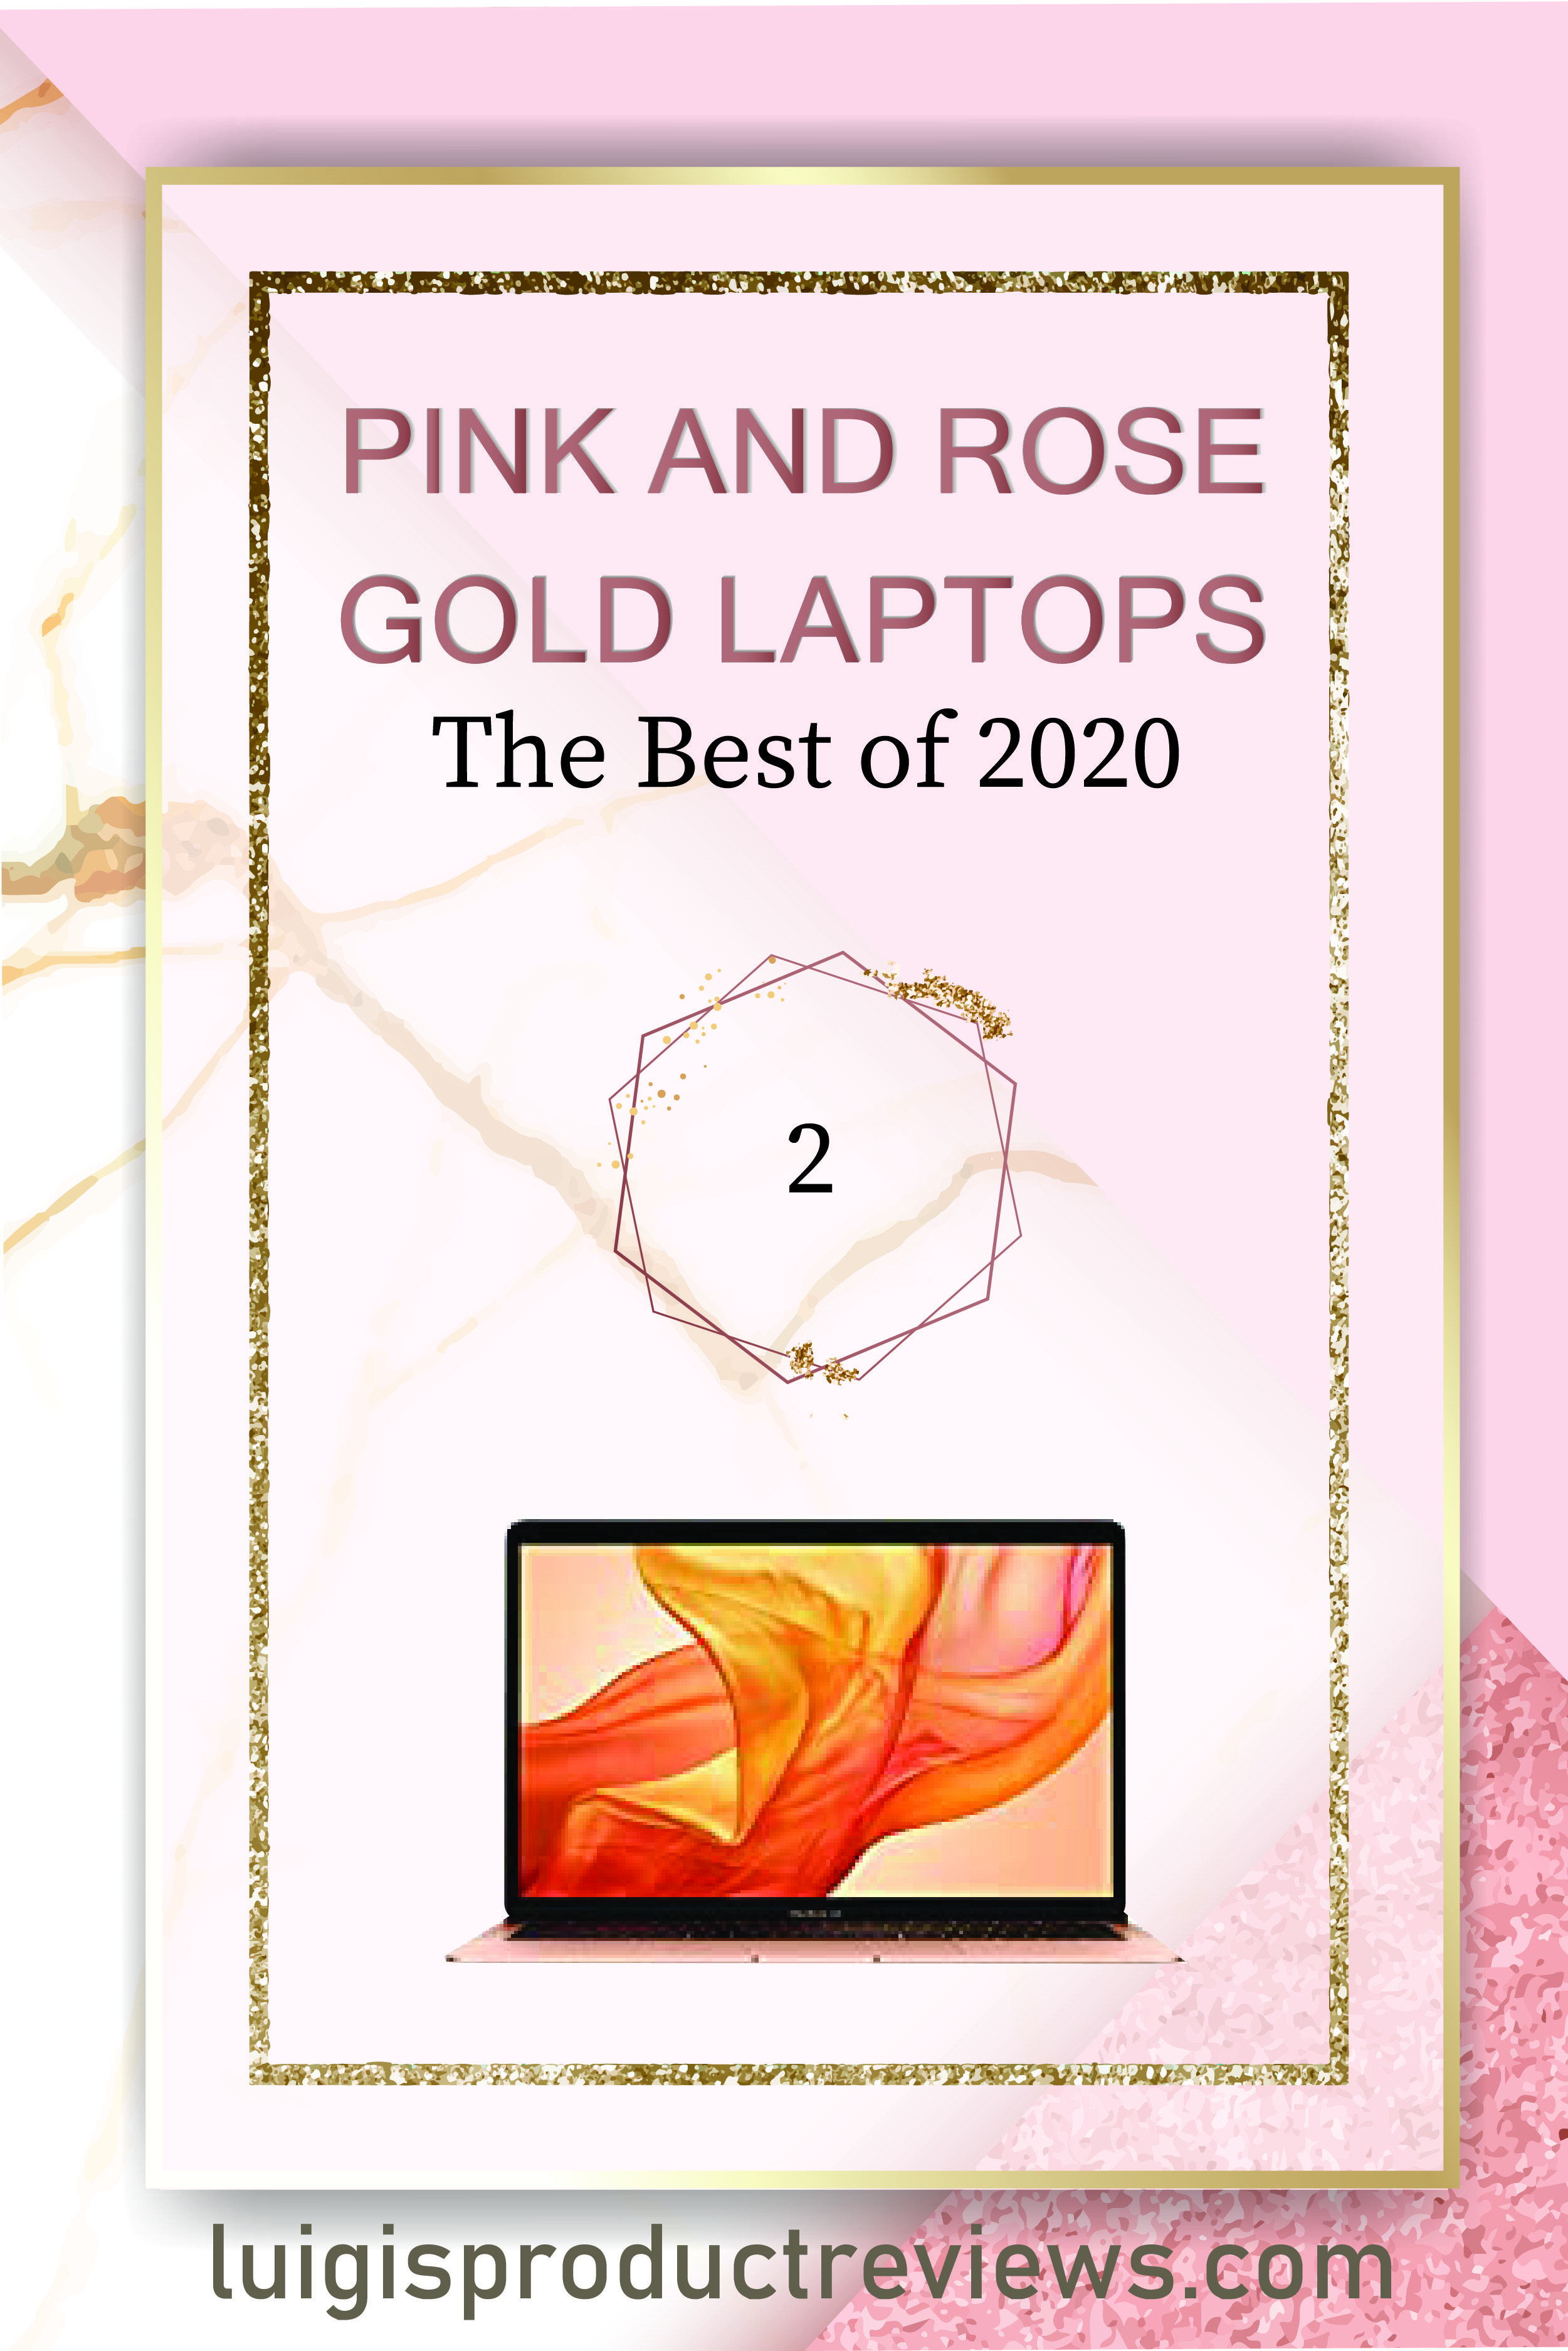 6 Best Pink and Rose Gold Laptops in 2020 | They are Lovely